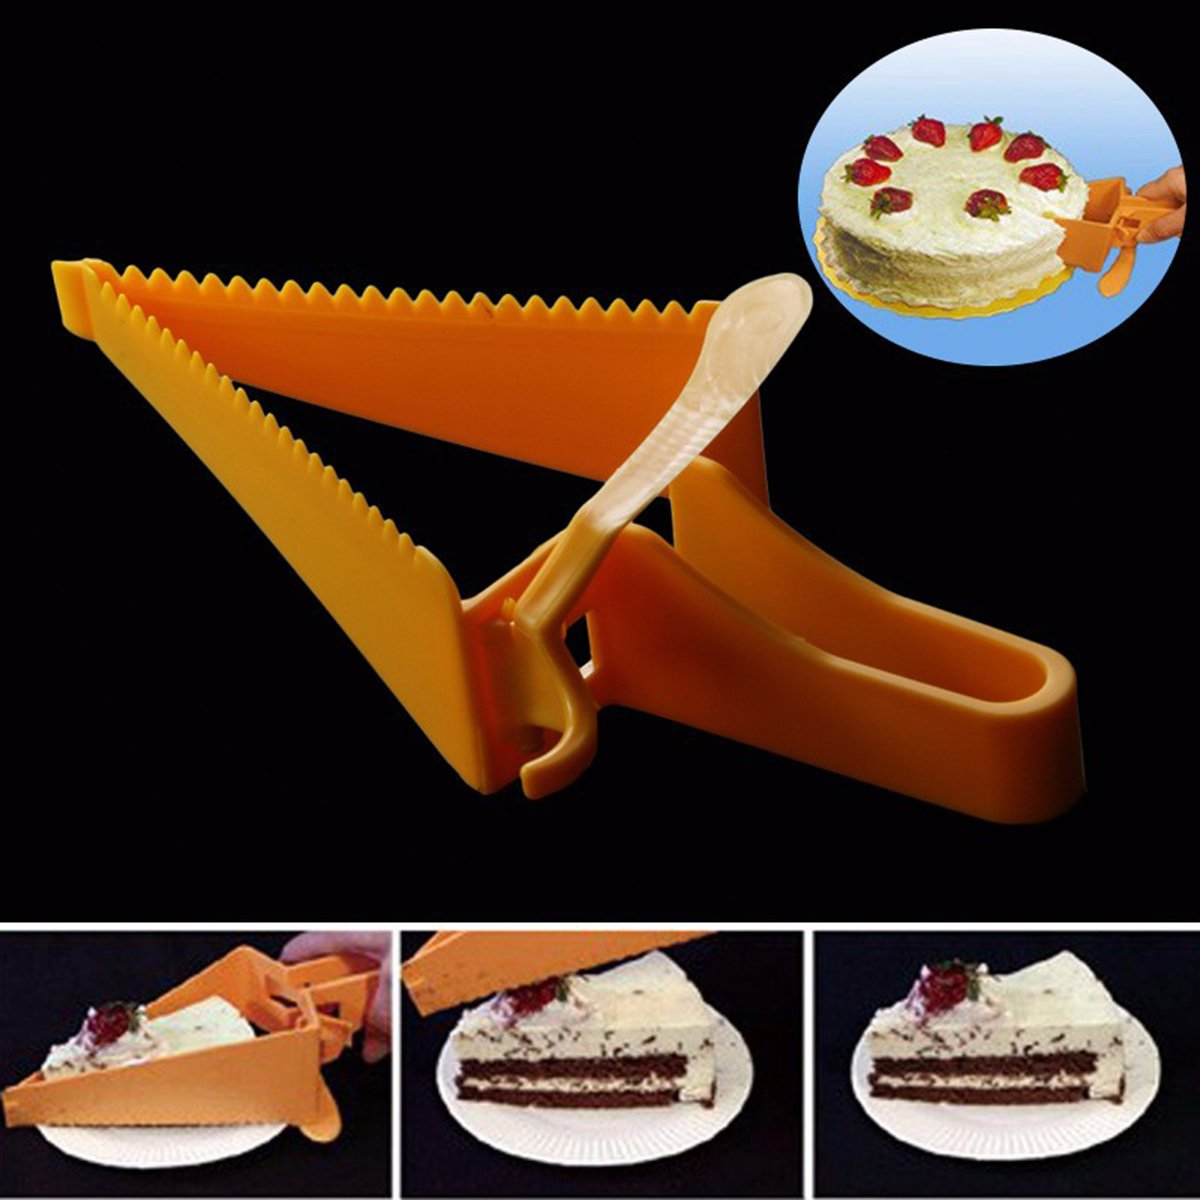 Nrpfell Triangle-Design Adjustable Cake Cutter Baking Tool Cake Slicer Baking Cutter Tool by Nrpfell (Image #3)